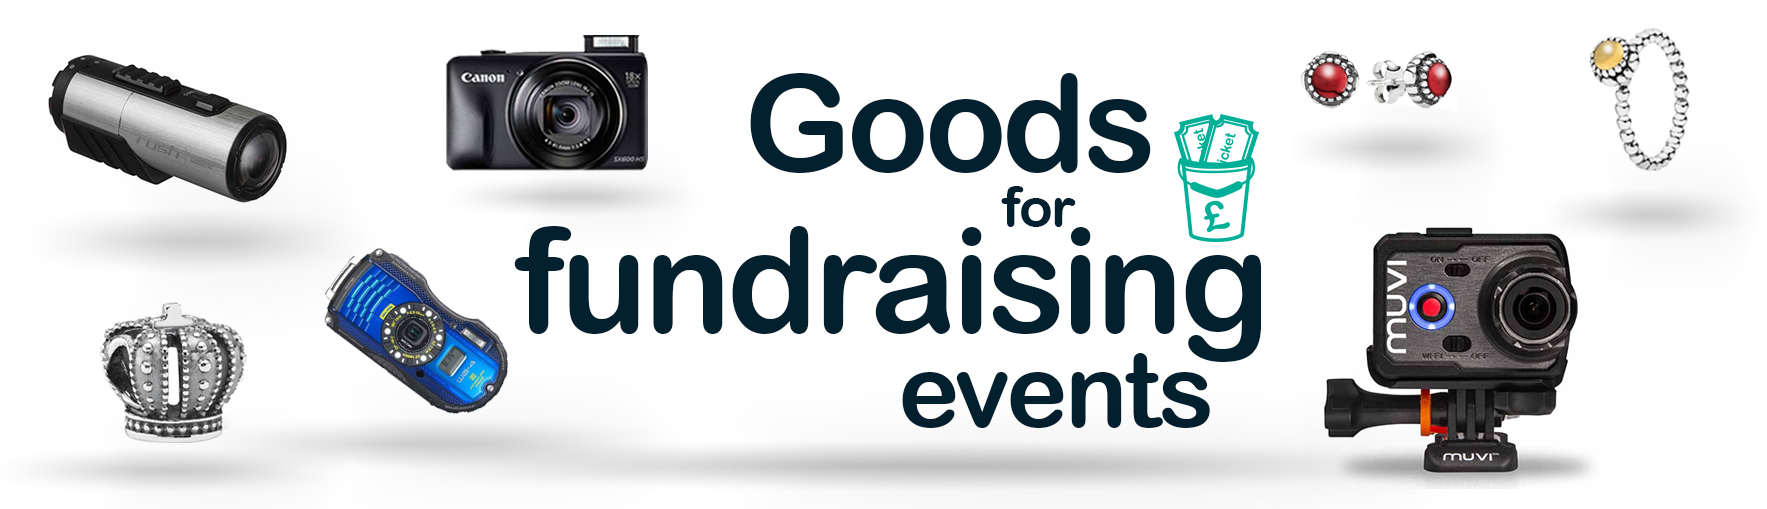 Goods for Fundraising Events